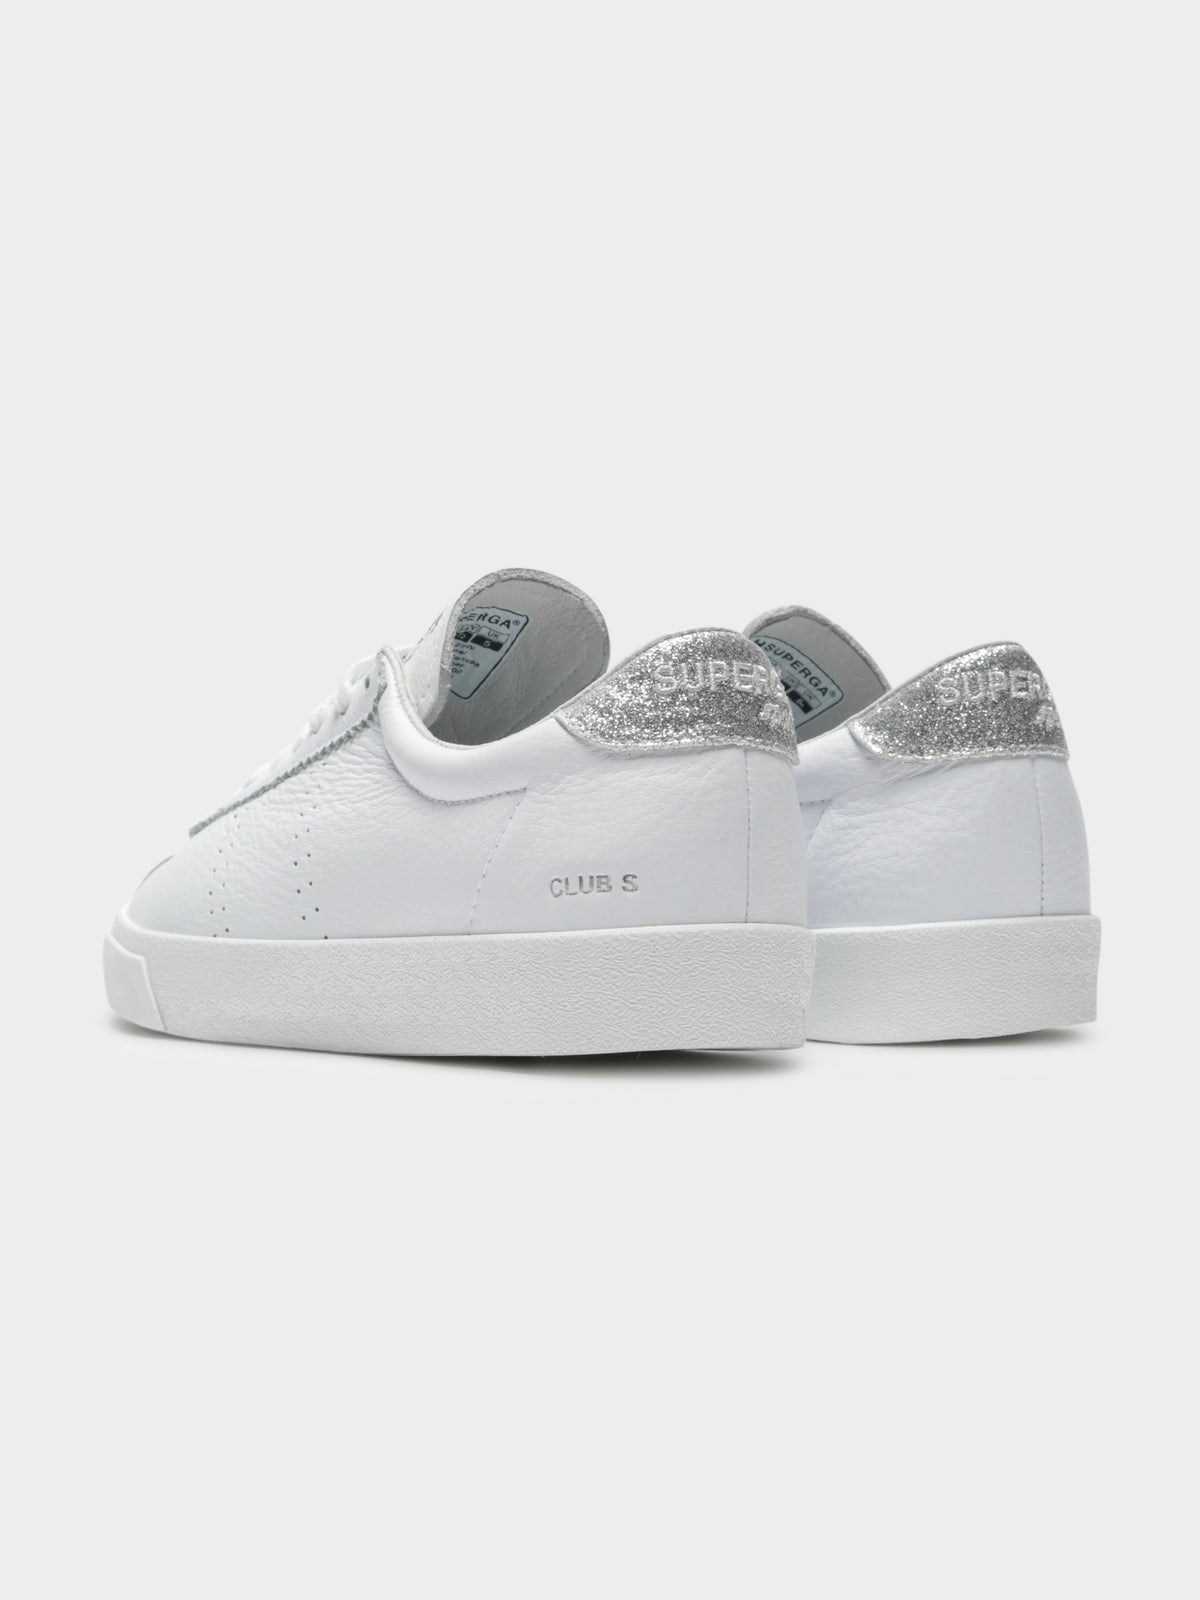 Womens 2869 Club S Comfleaglitter Sneakers in White